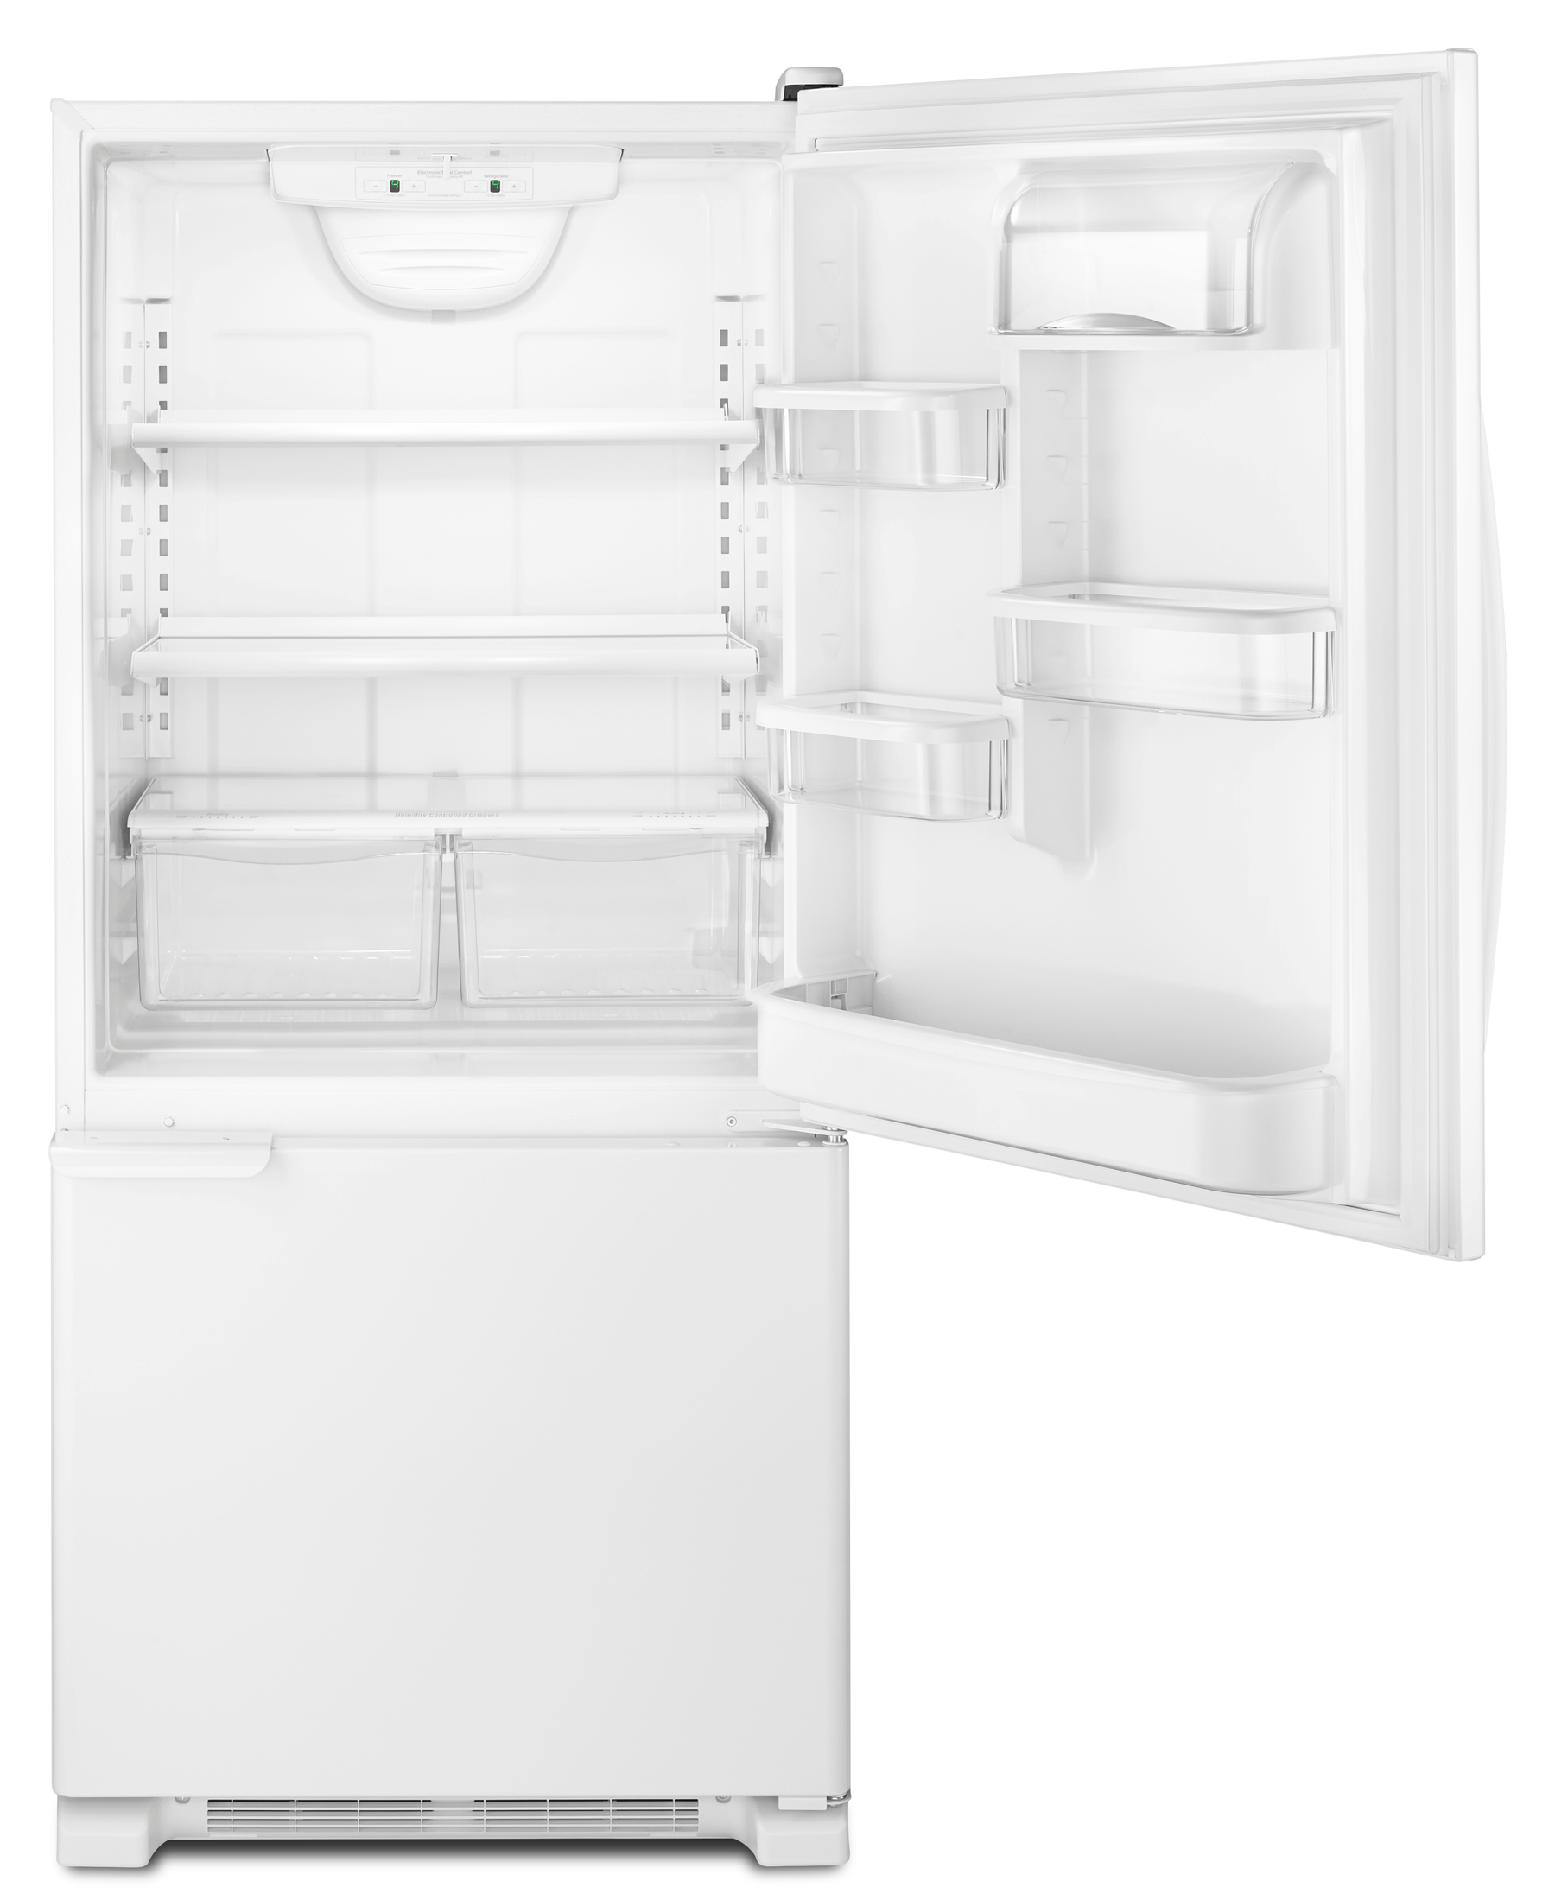 Kenmore 19 cu. ft. Bottom-Freezer Refrigerator - White